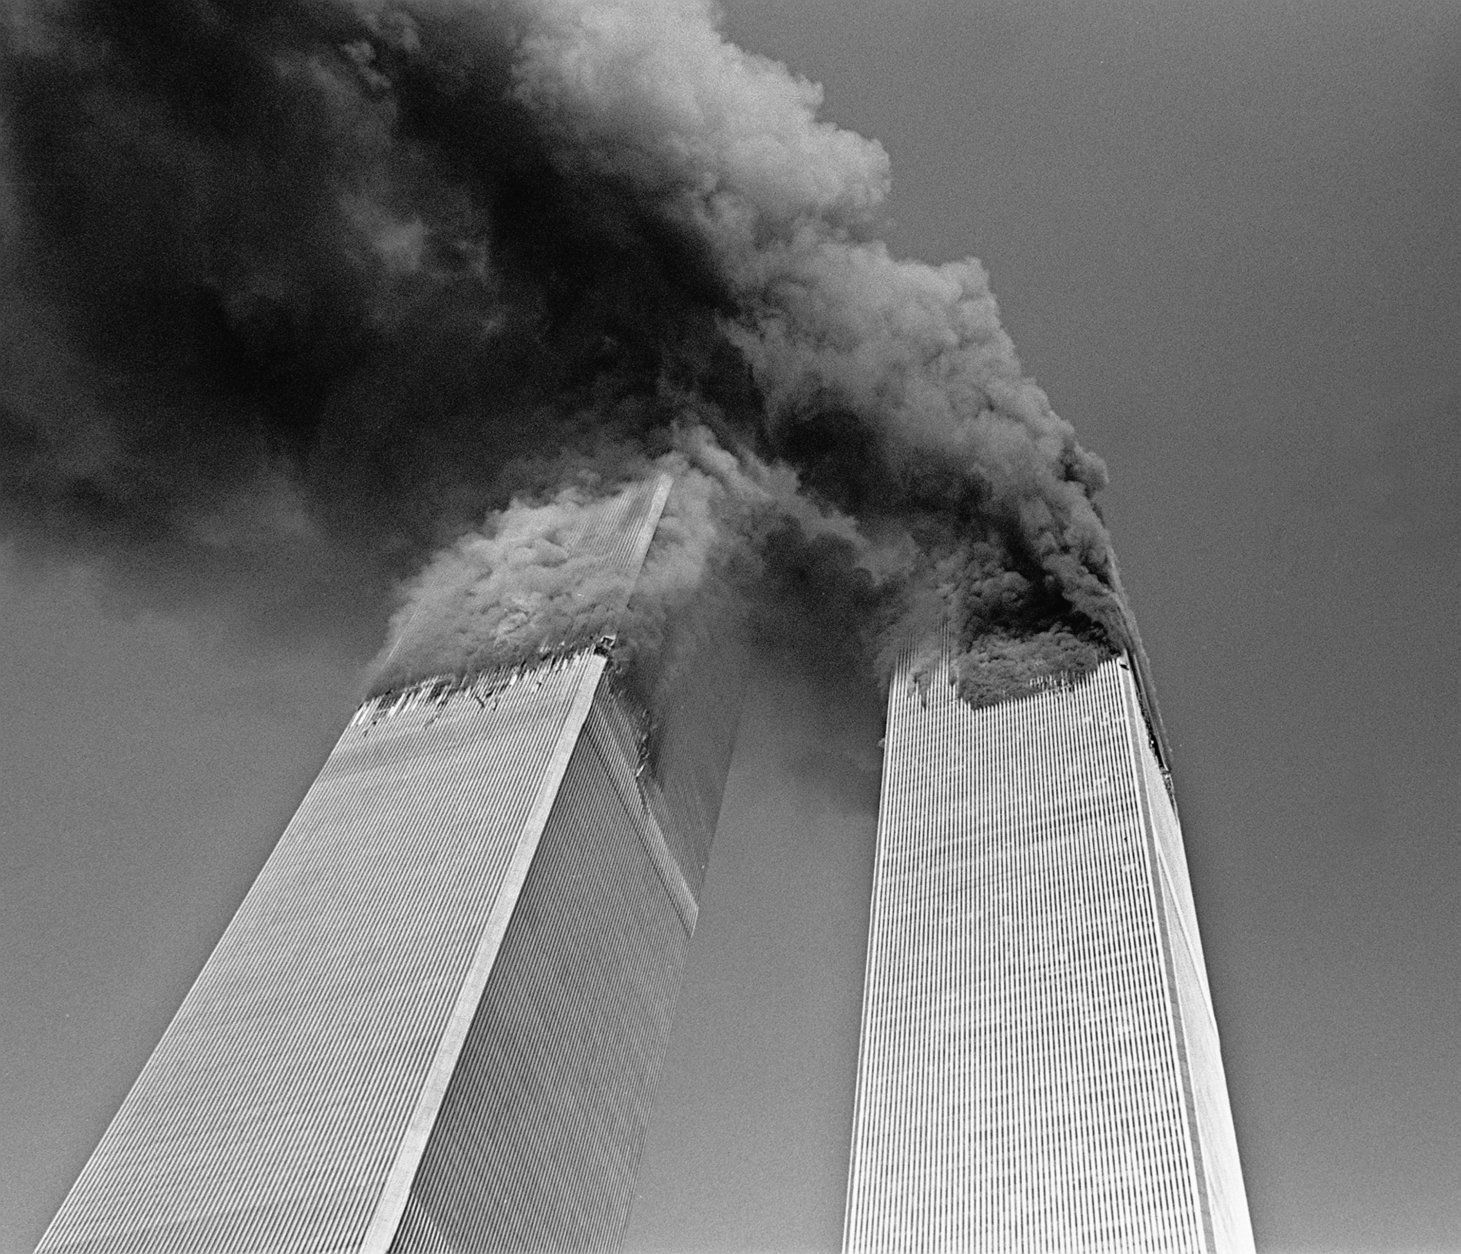 Smoke billows from the twin towers of the World Trade Center in New York Tuesday Sept. 11, 2001. In one of the most horrifying attacks ever against the United States, terrorists crashed two airliners into the World Trade Center in a deadly series of blows that brought down the twin 110-story towers. (AP Photo/Gulnara Samoilova)